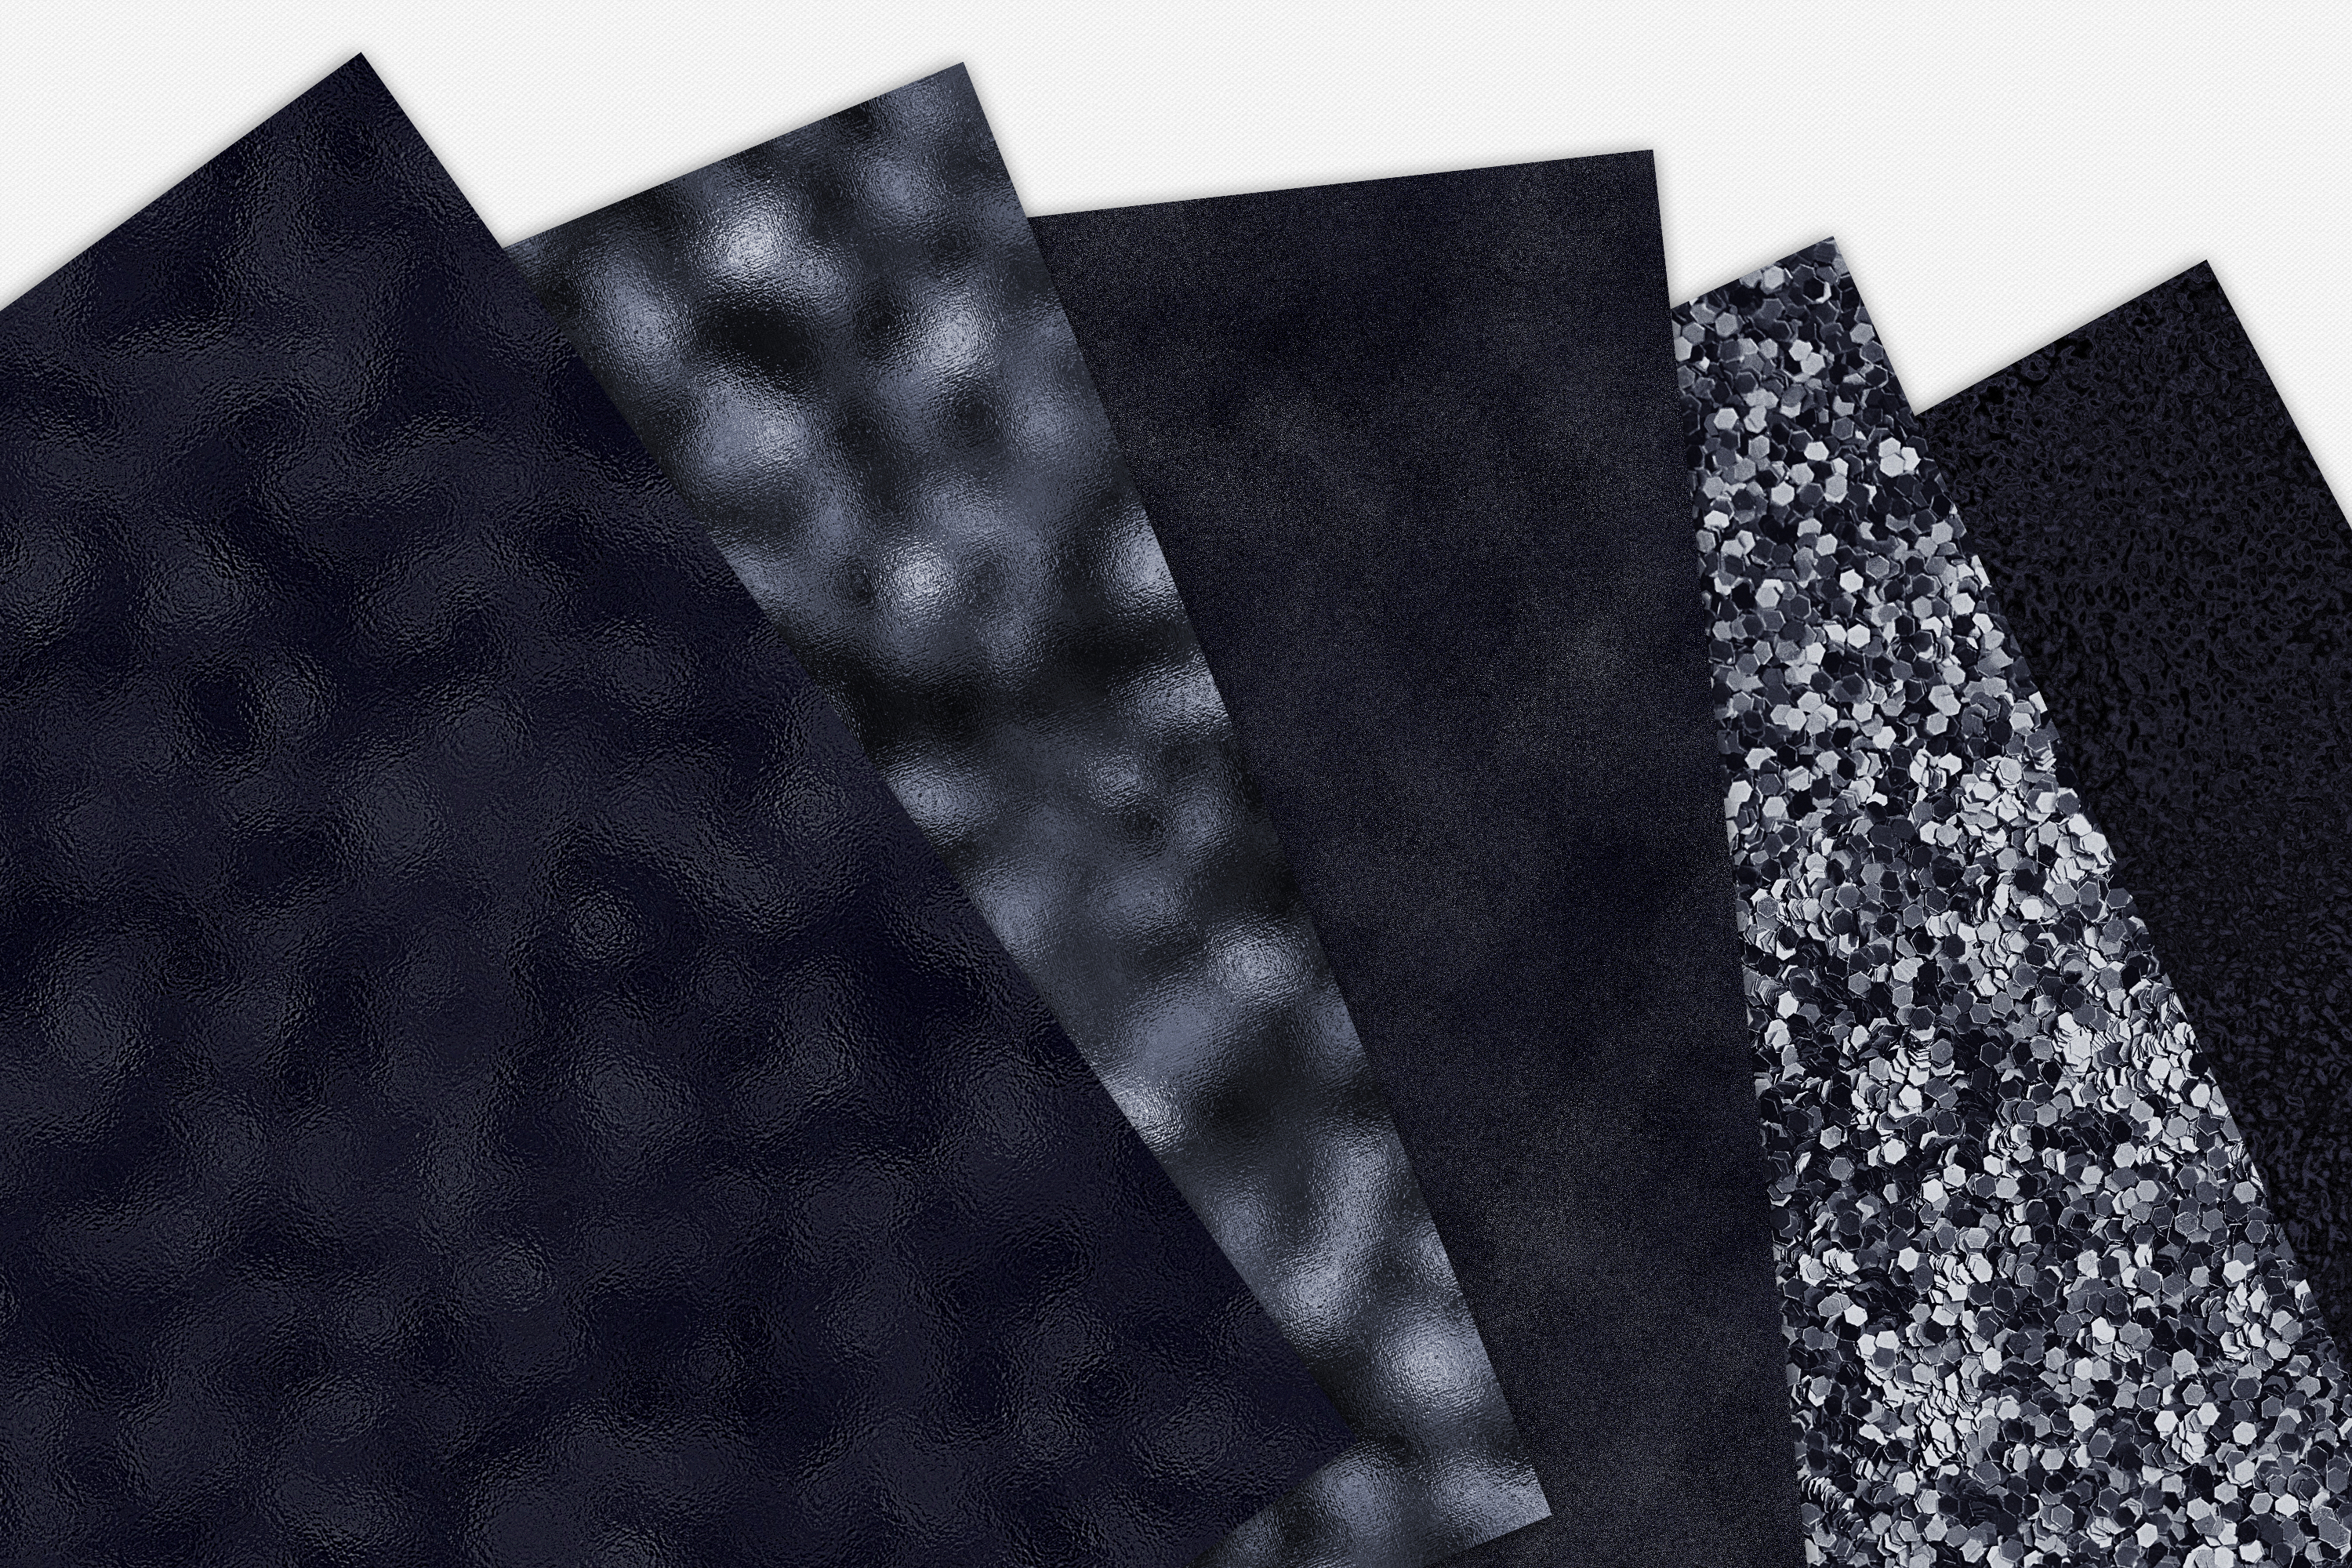 15 Black Metallic, Foil and Glitter Digital Papers example image 7